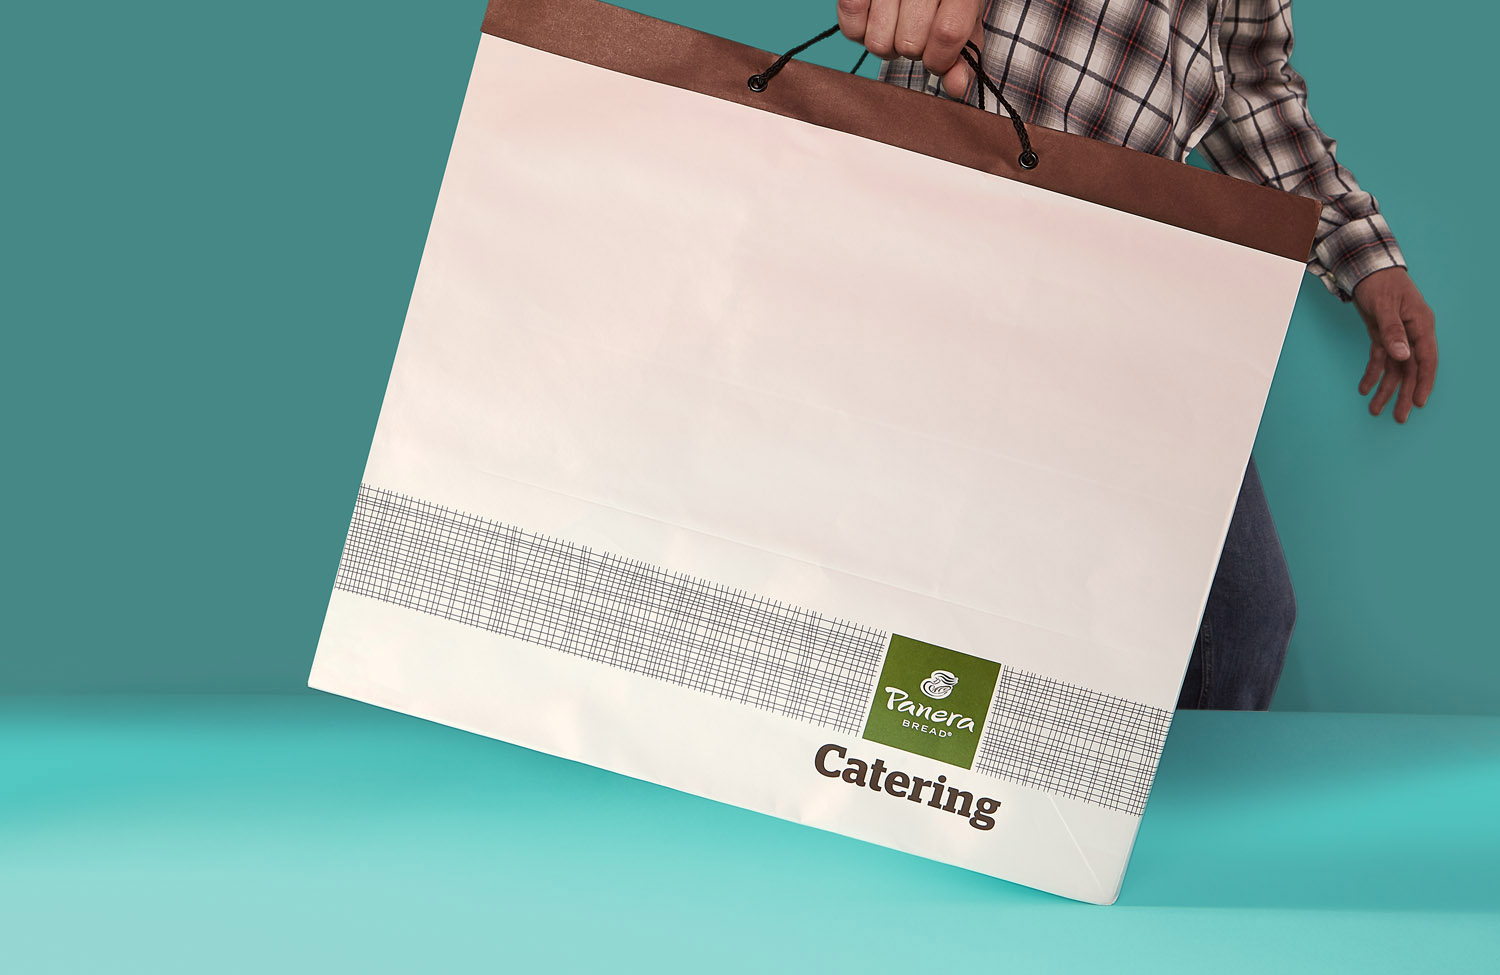 Catering bag 1410_rfc.jpg